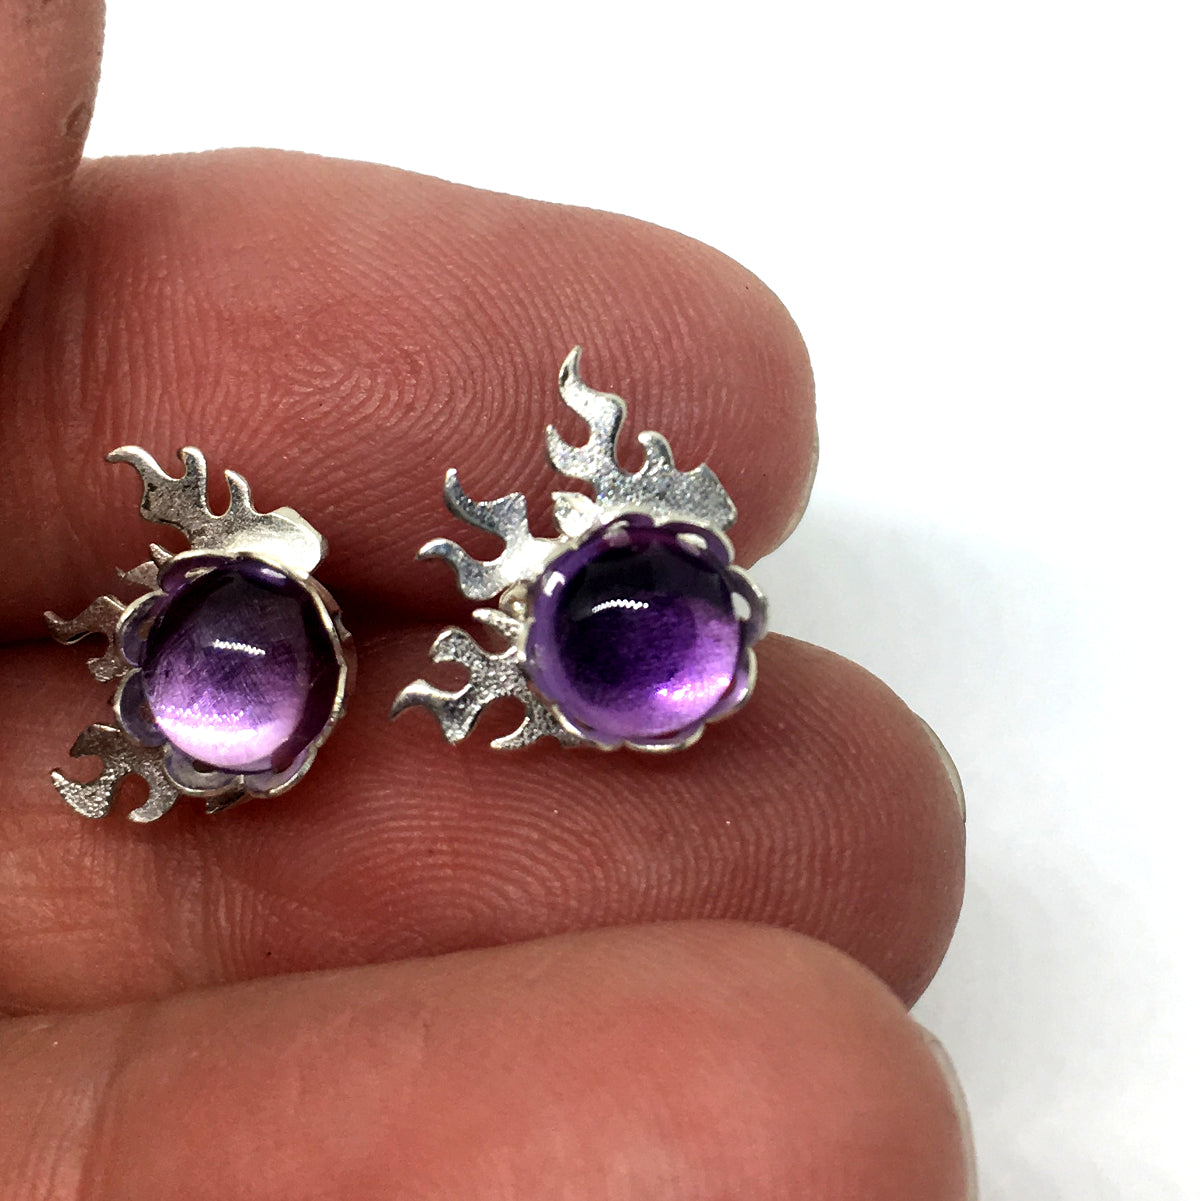 6mm round amethyst are bezel set